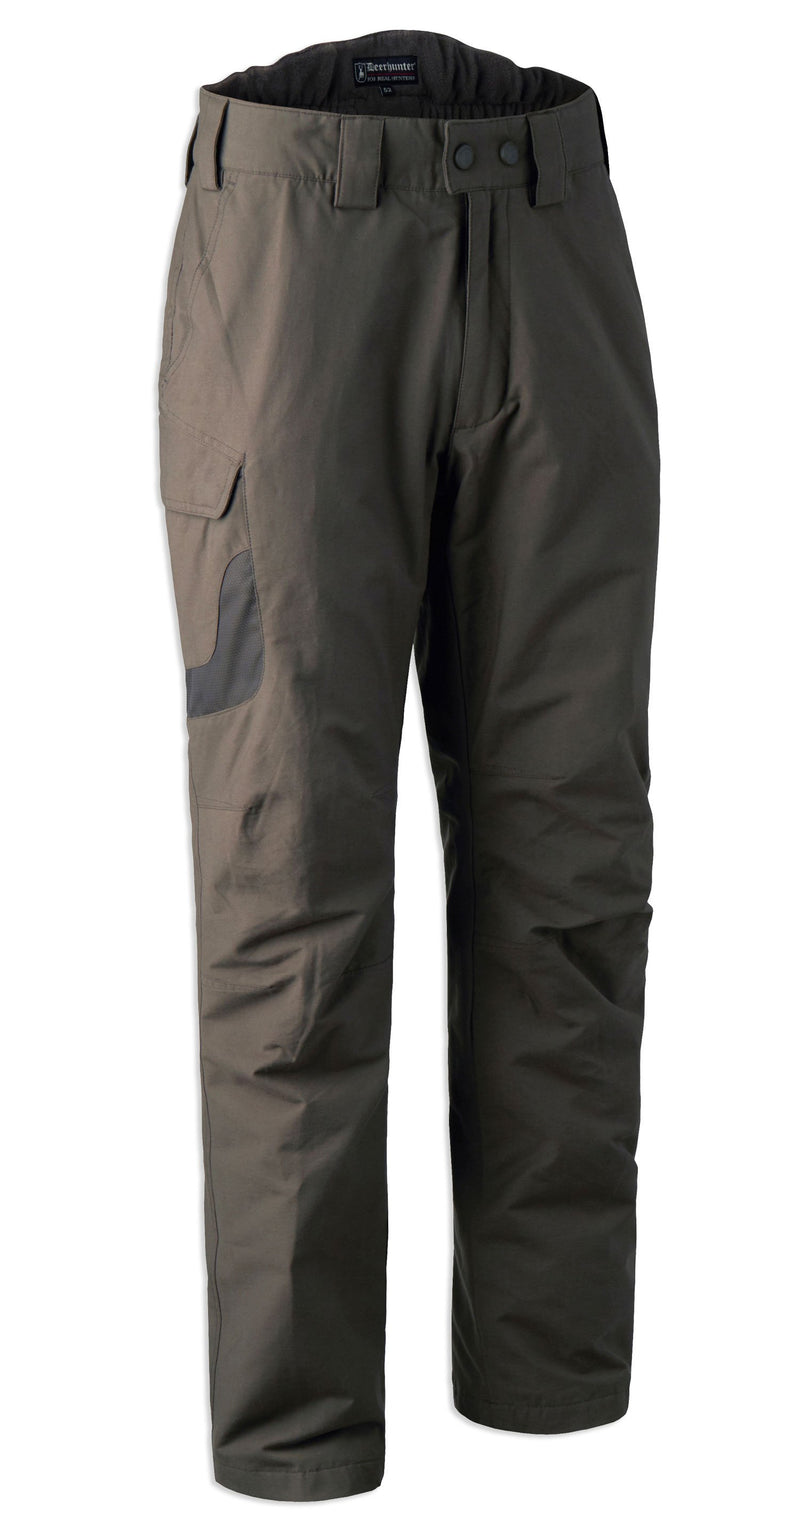 Waterproof Deerhunter Upland Trousers